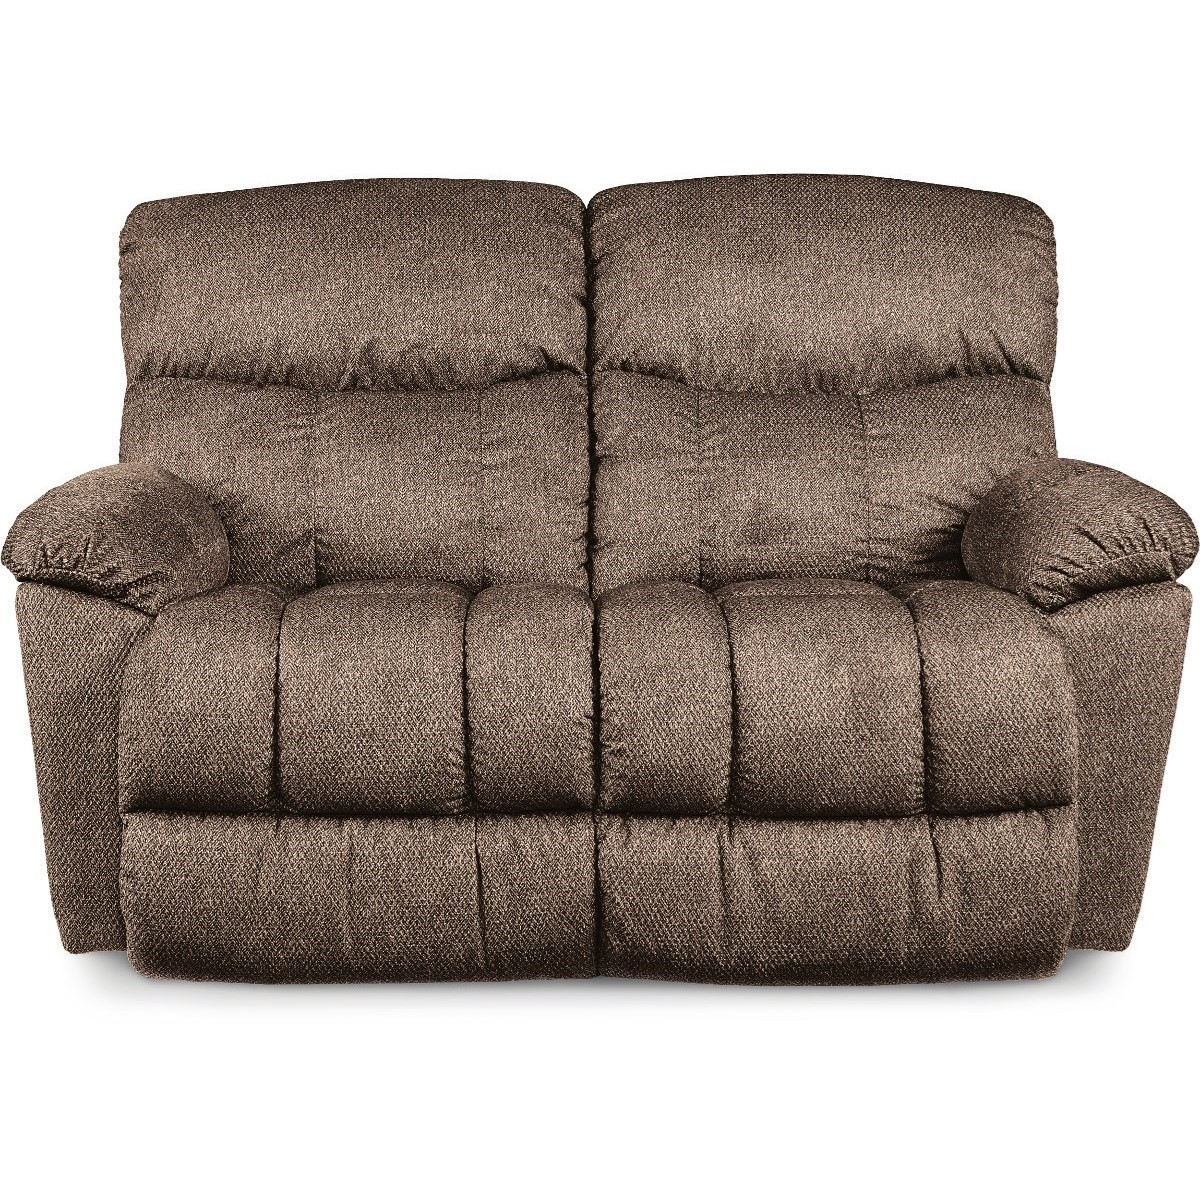 Casual Power Reclining Loveseat with USB Charging Ports and Power Headrests